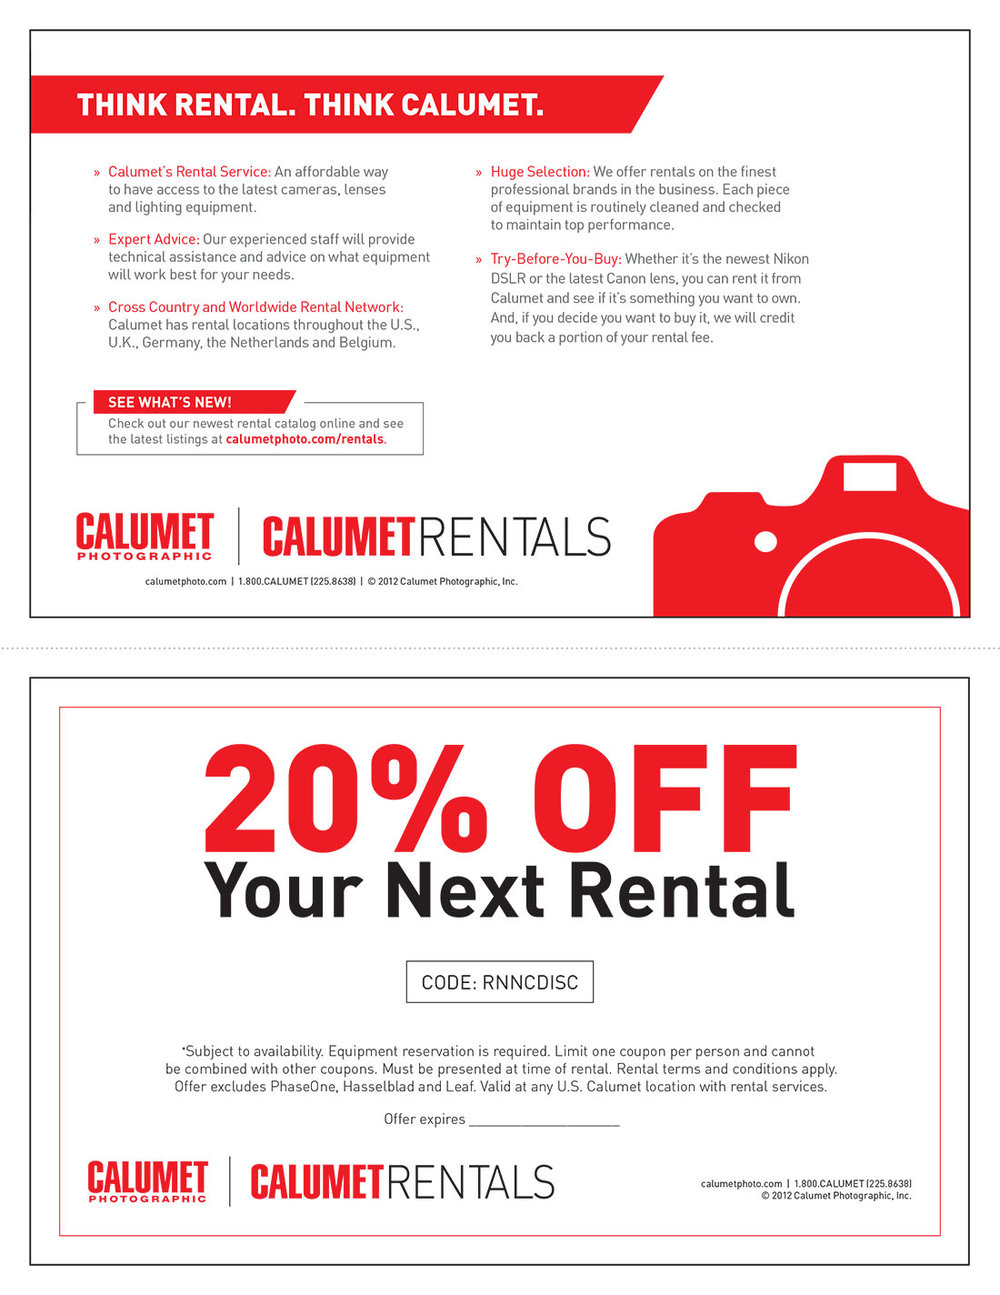 Rental-Coupon.jpg